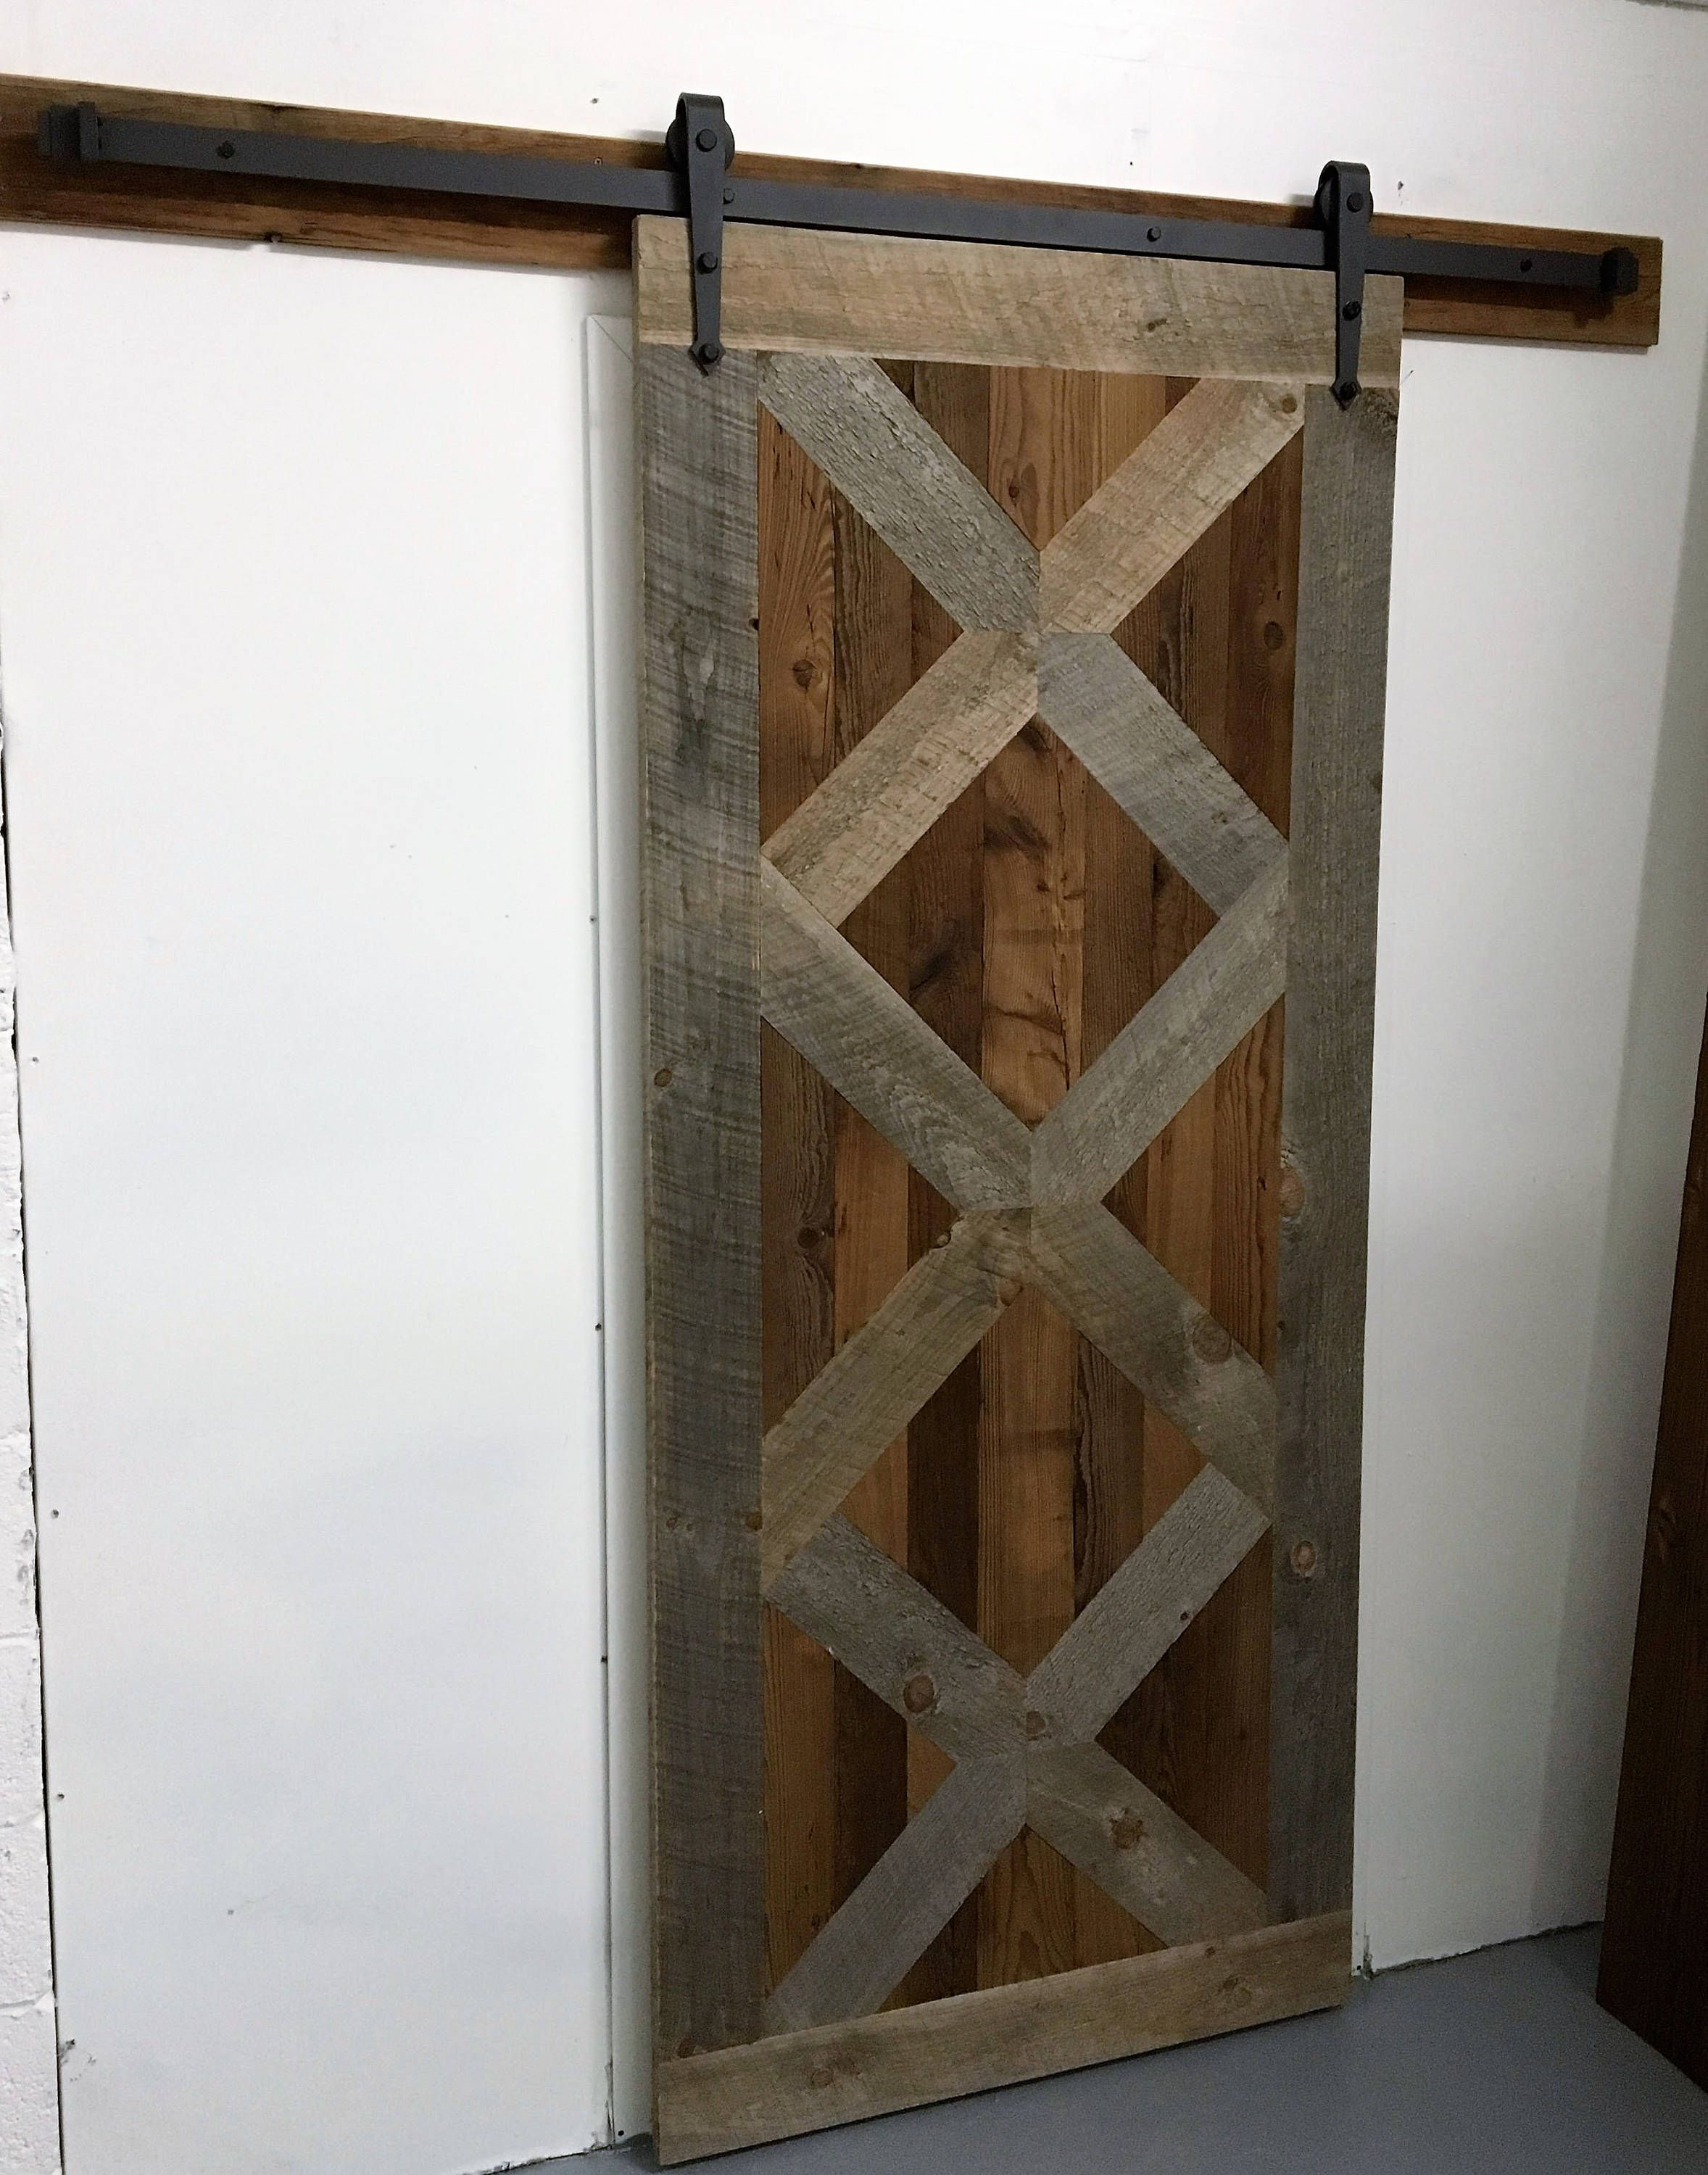 Reclaimed Barn Door Reclaimed Wood Door Sliding Door Door 24 Inch Barn Door 30 Inch Barn Door 36 Inch Bar Wood Barn Door Barn Door Hardware Barn Door